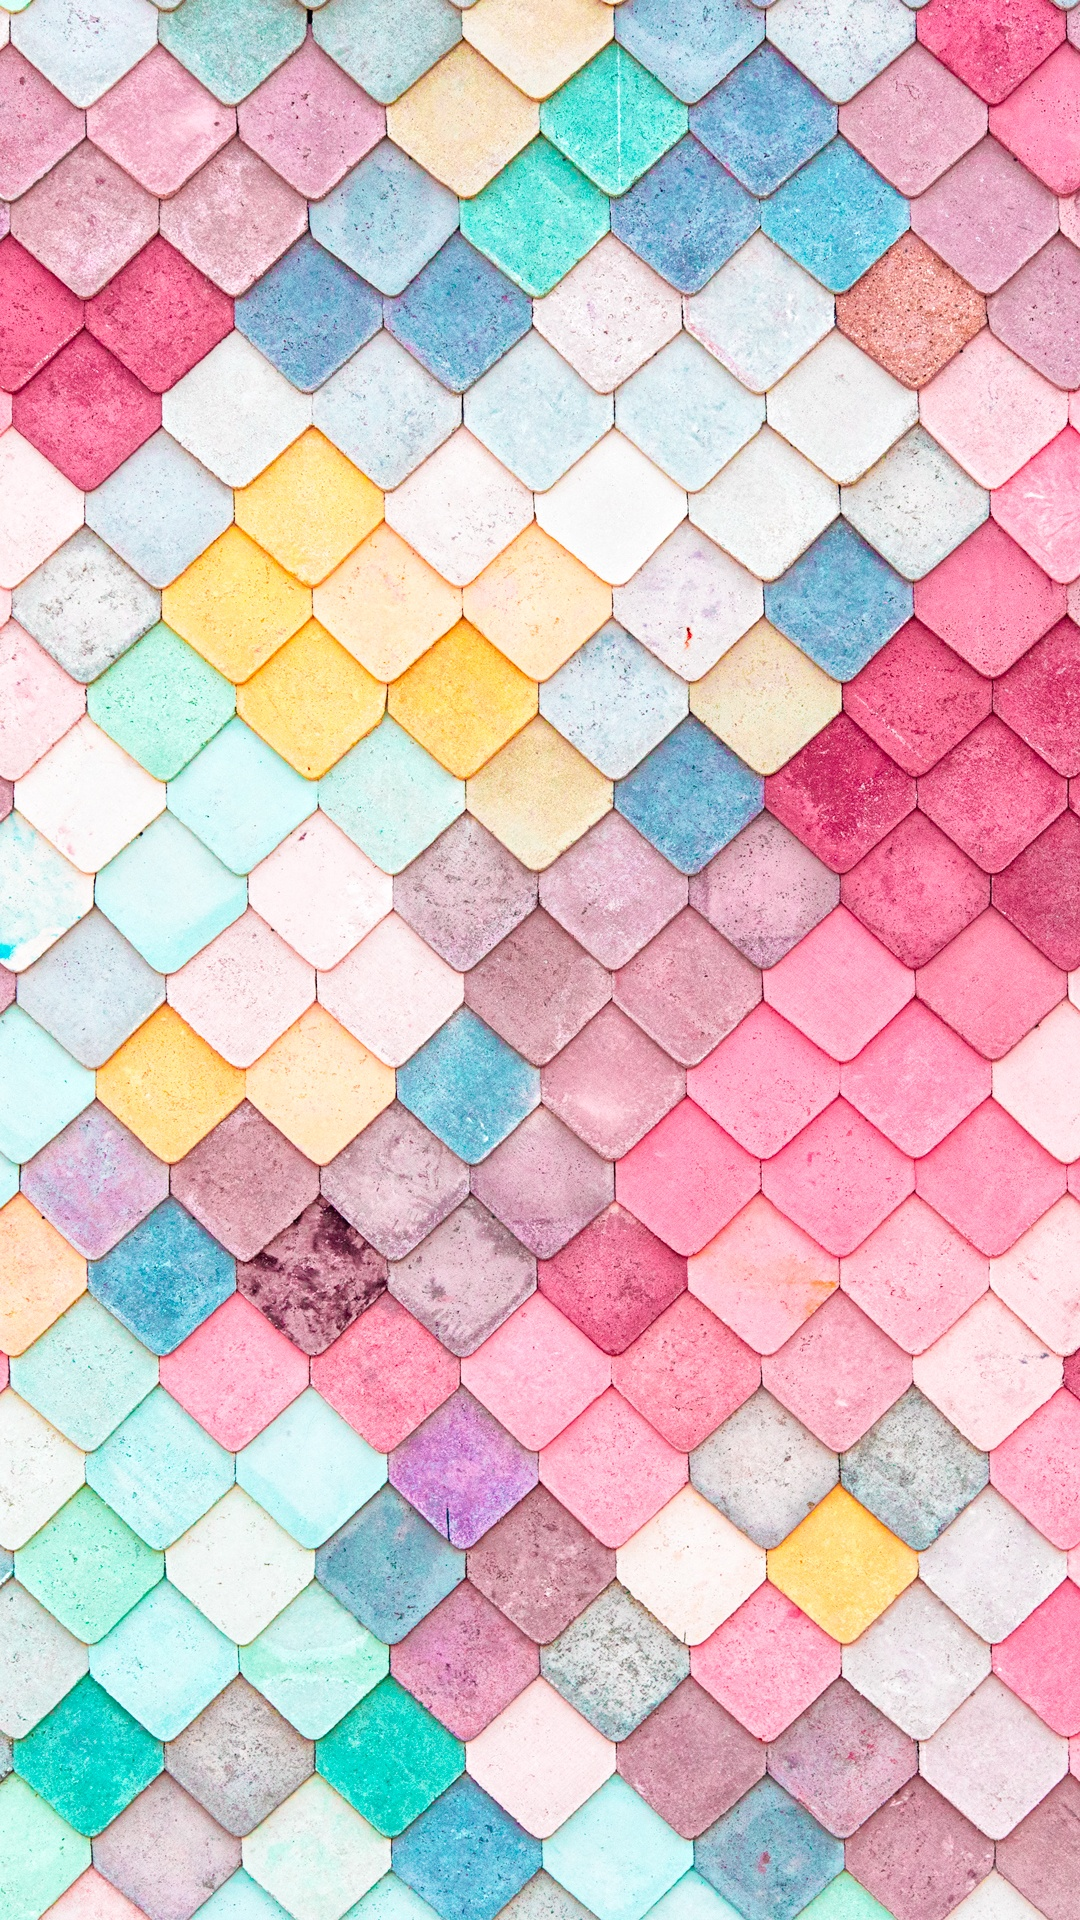 Colorful-Roof-Tiles-Pattern-iPhone-Plus-HD-wallpaper-wp3404040